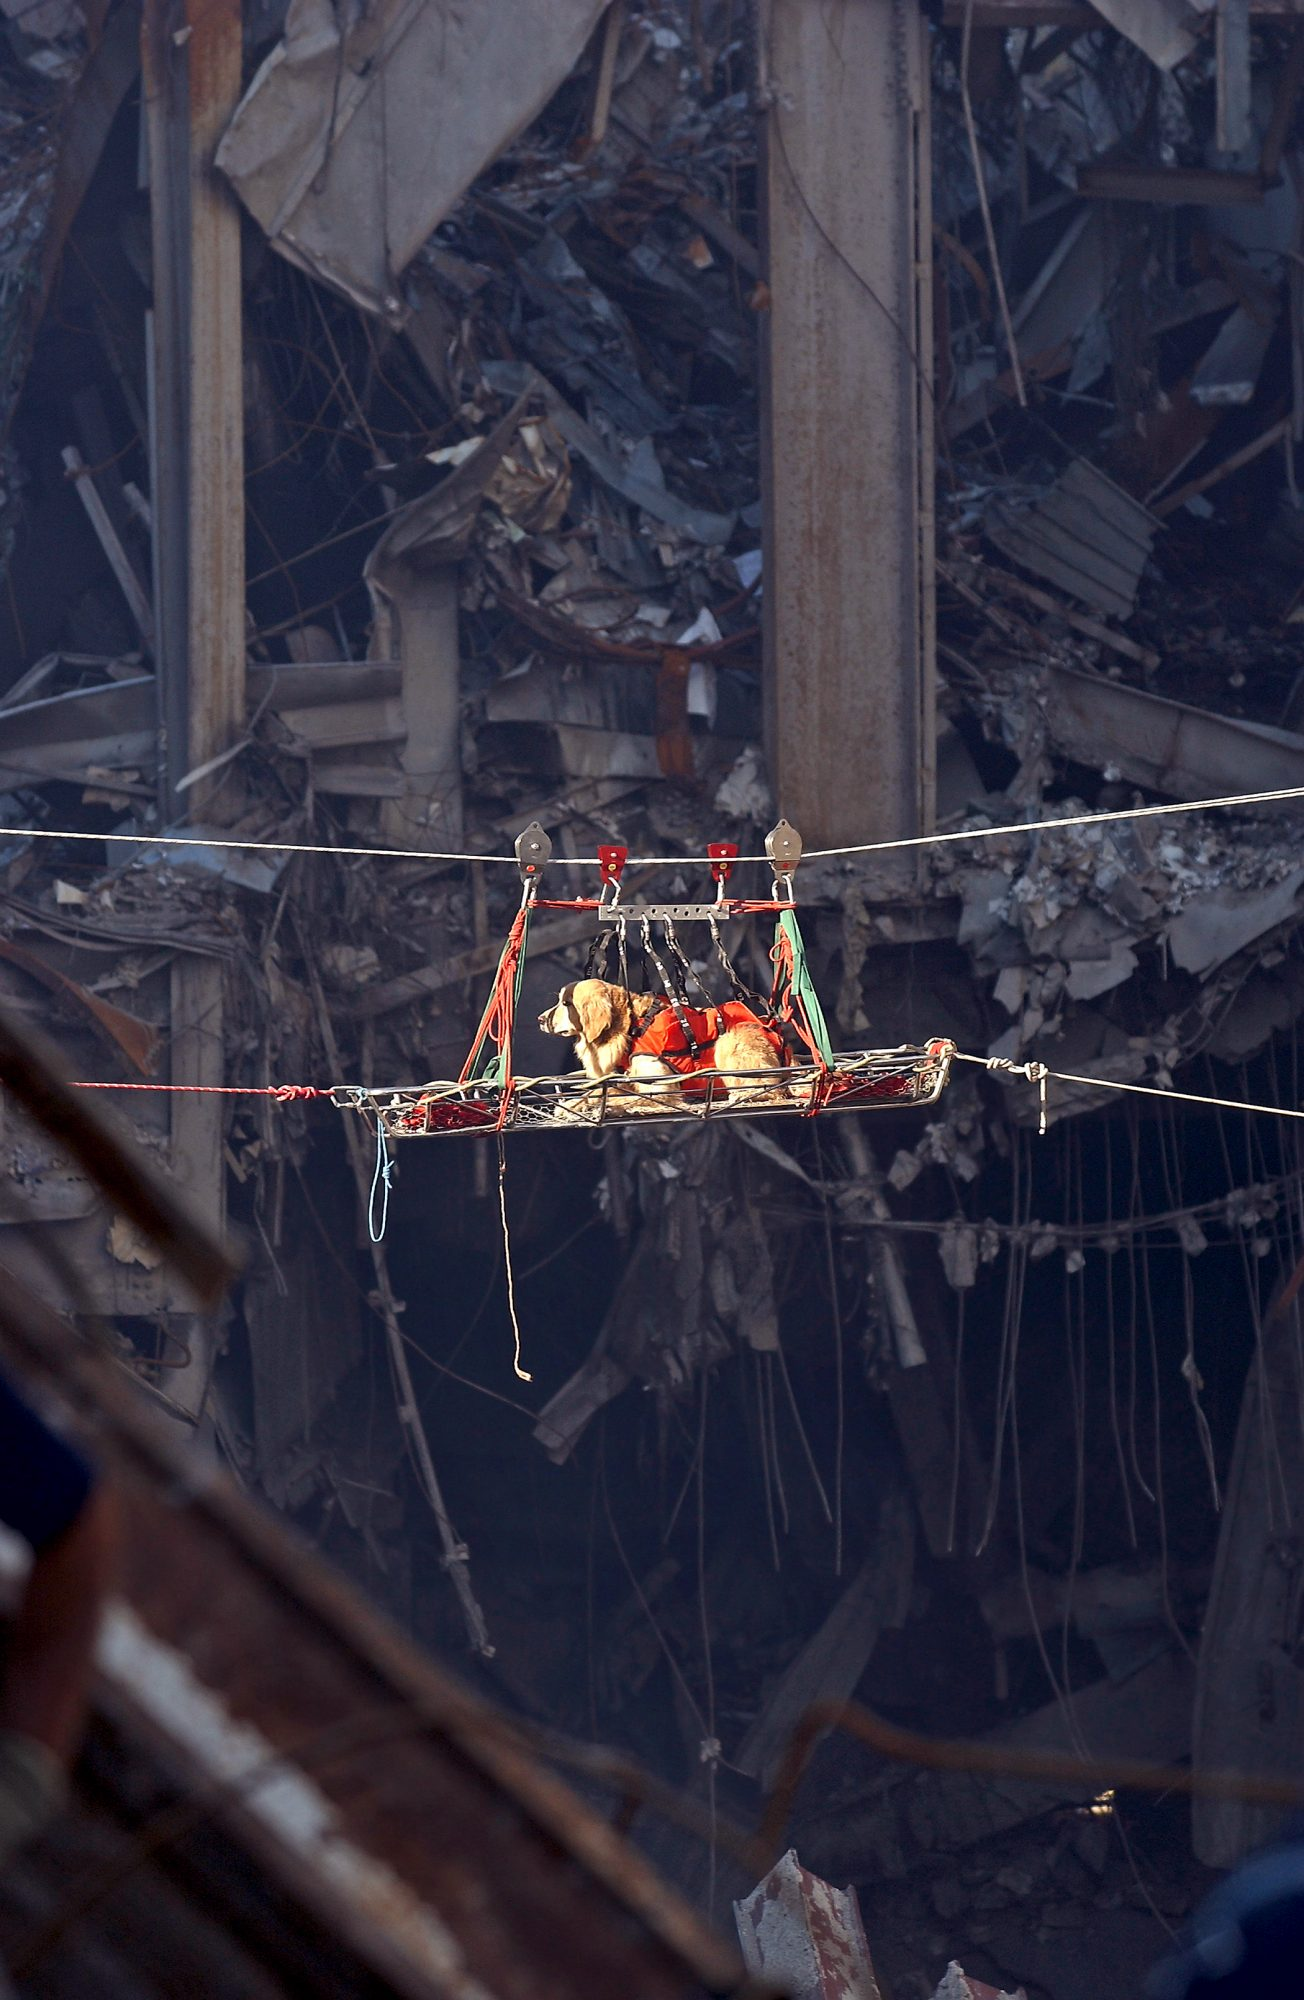 9/11 rescue Dog transported out of the debris of the World Trade Center.